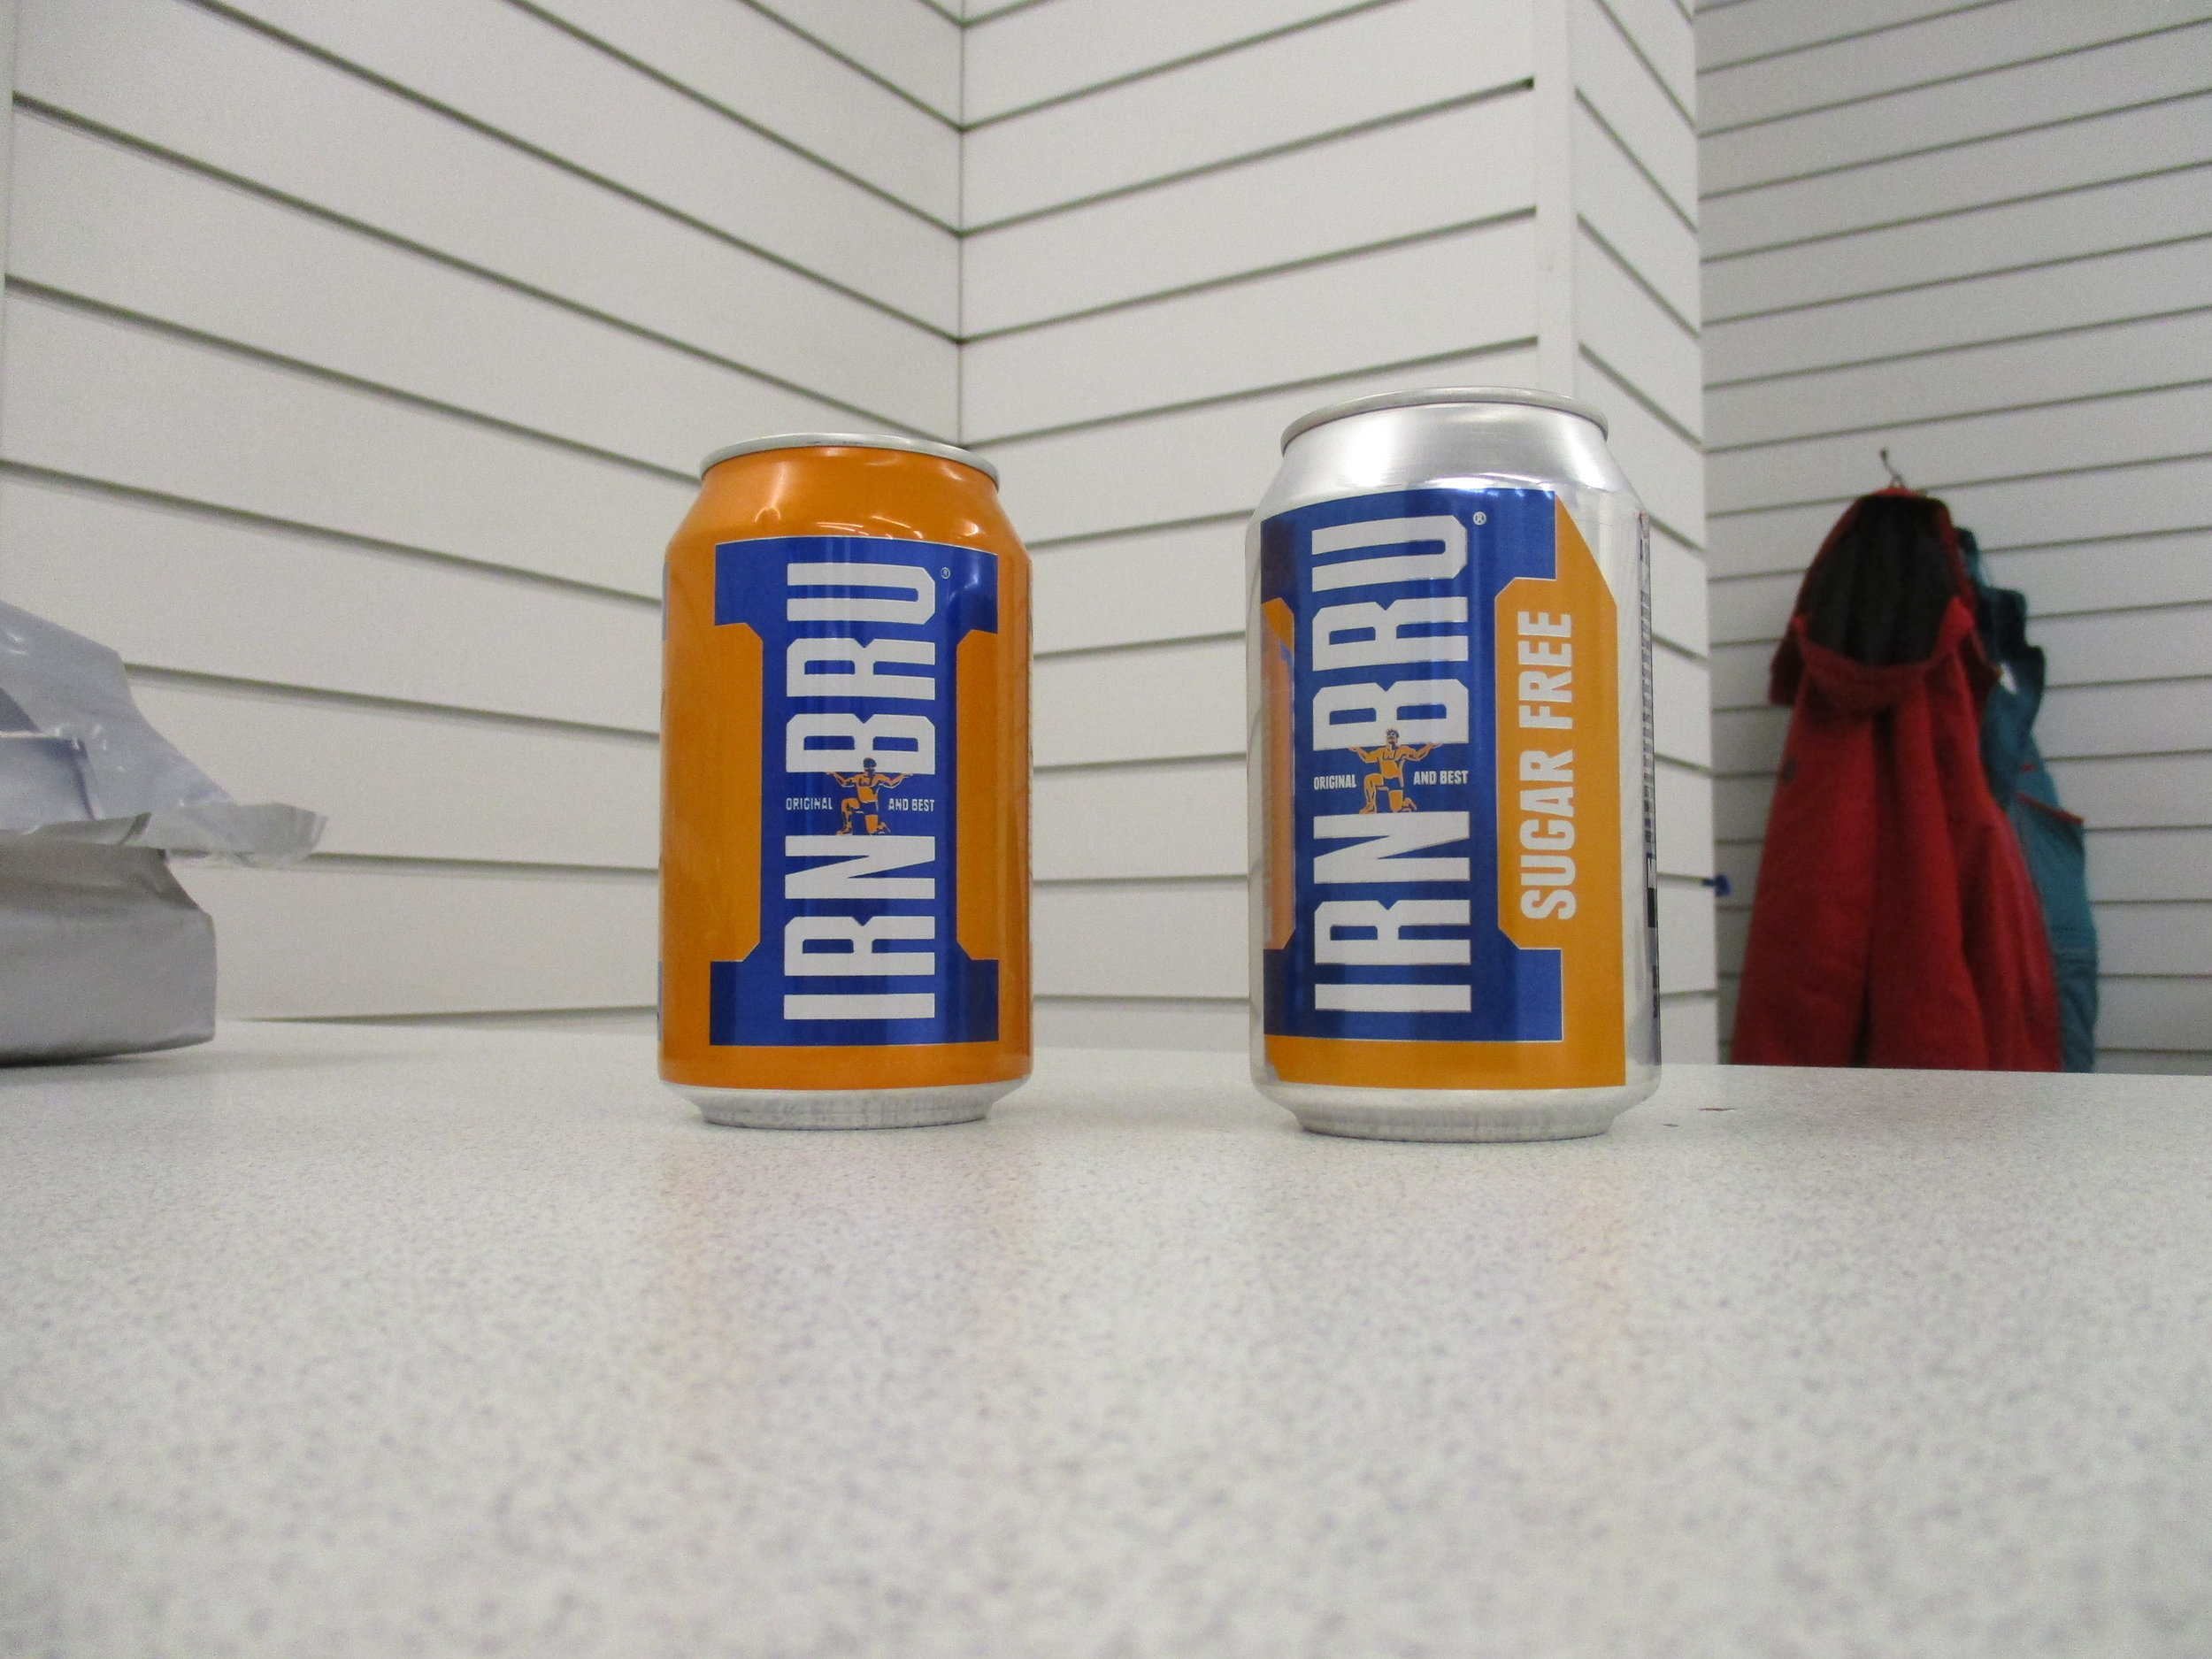 For those of you in England, Irn Bru is also available in Cannes.